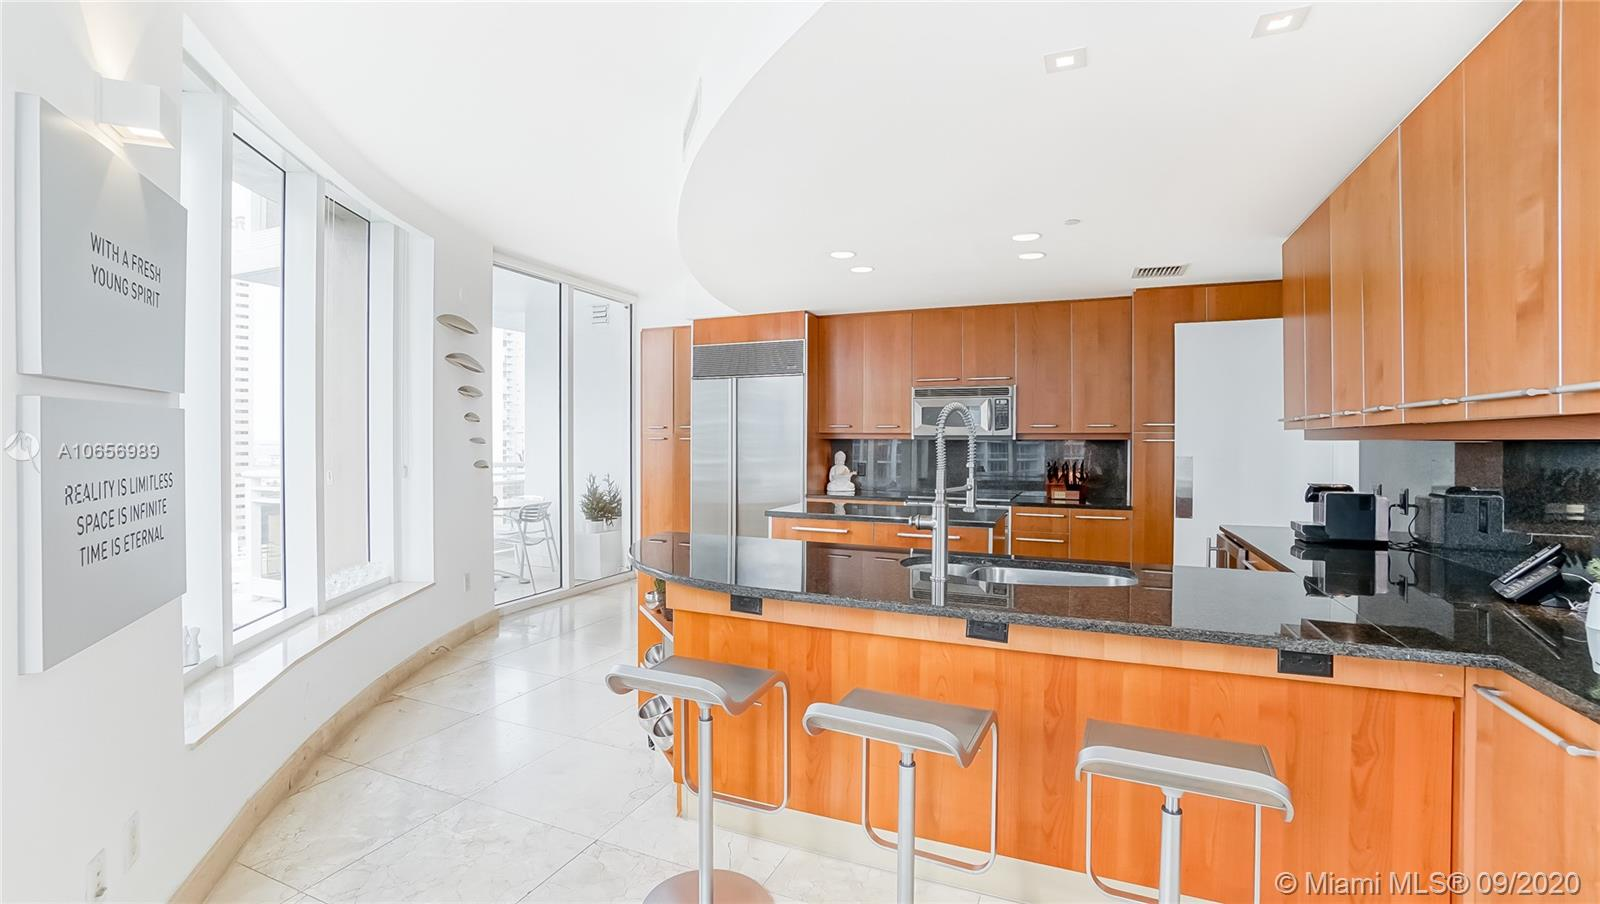 Most desirable line in the entire building. 3 bedroom corner unit in the most luxurious building on Brickell Key. Marble floors throughout, open floor plan, Italian kitchen and bathrooms. Phenomenal views day and night. Carbonell offers five star amenities on exclusive Brickell Key. 2 parking spaces + 3 storage units!!